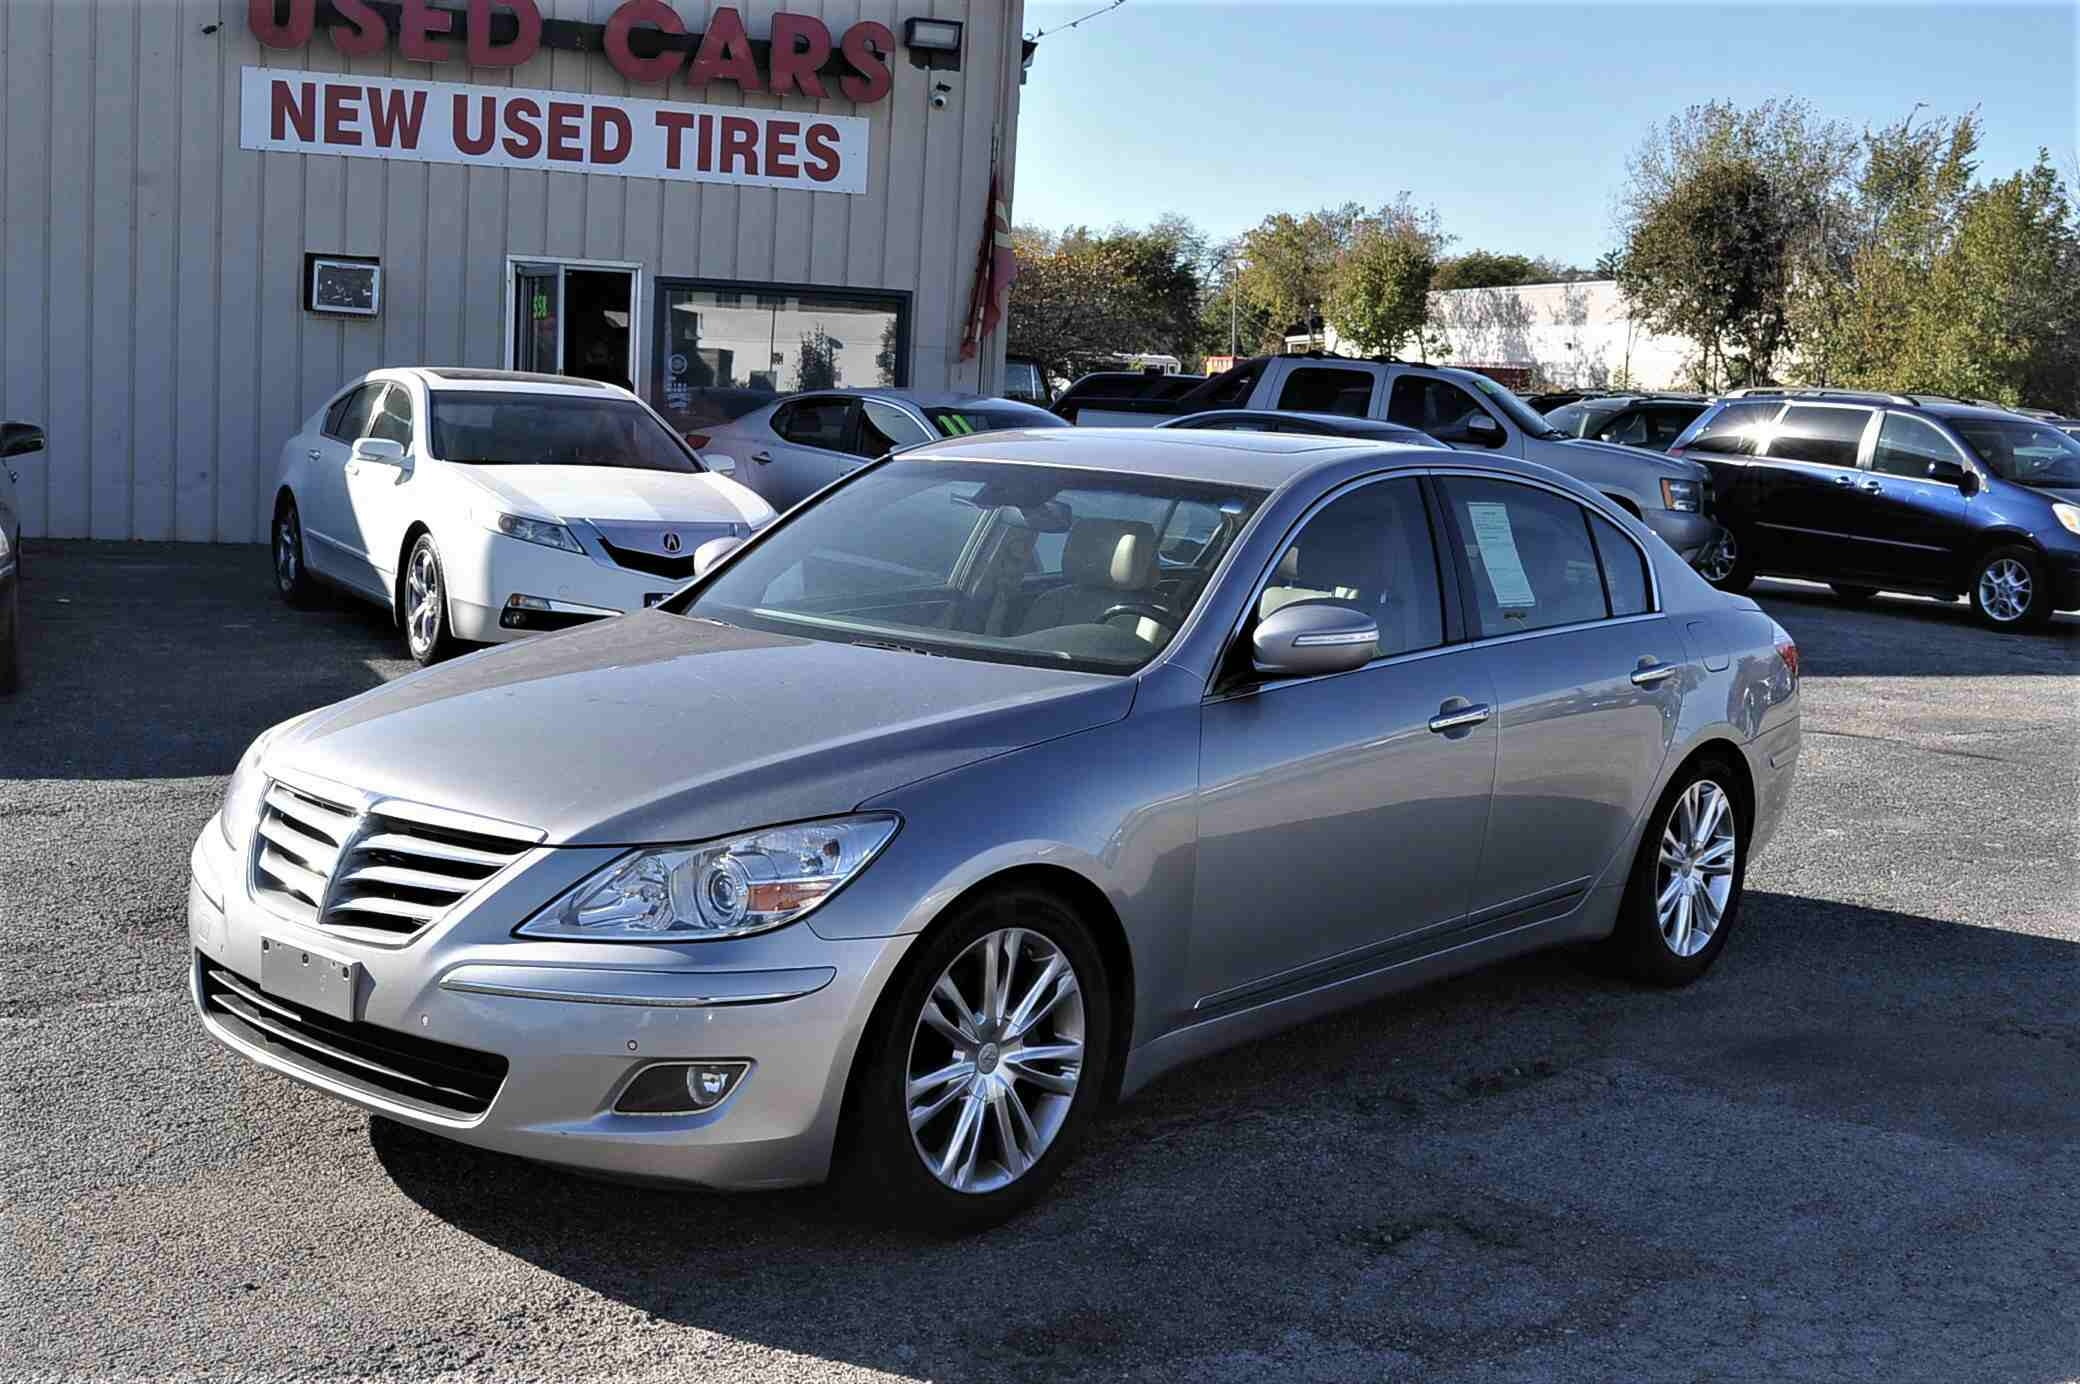 2009 Hyundai Genesis Silver Sedan Used Car Sale Antioch Zion Waukegan Lake County Illinois